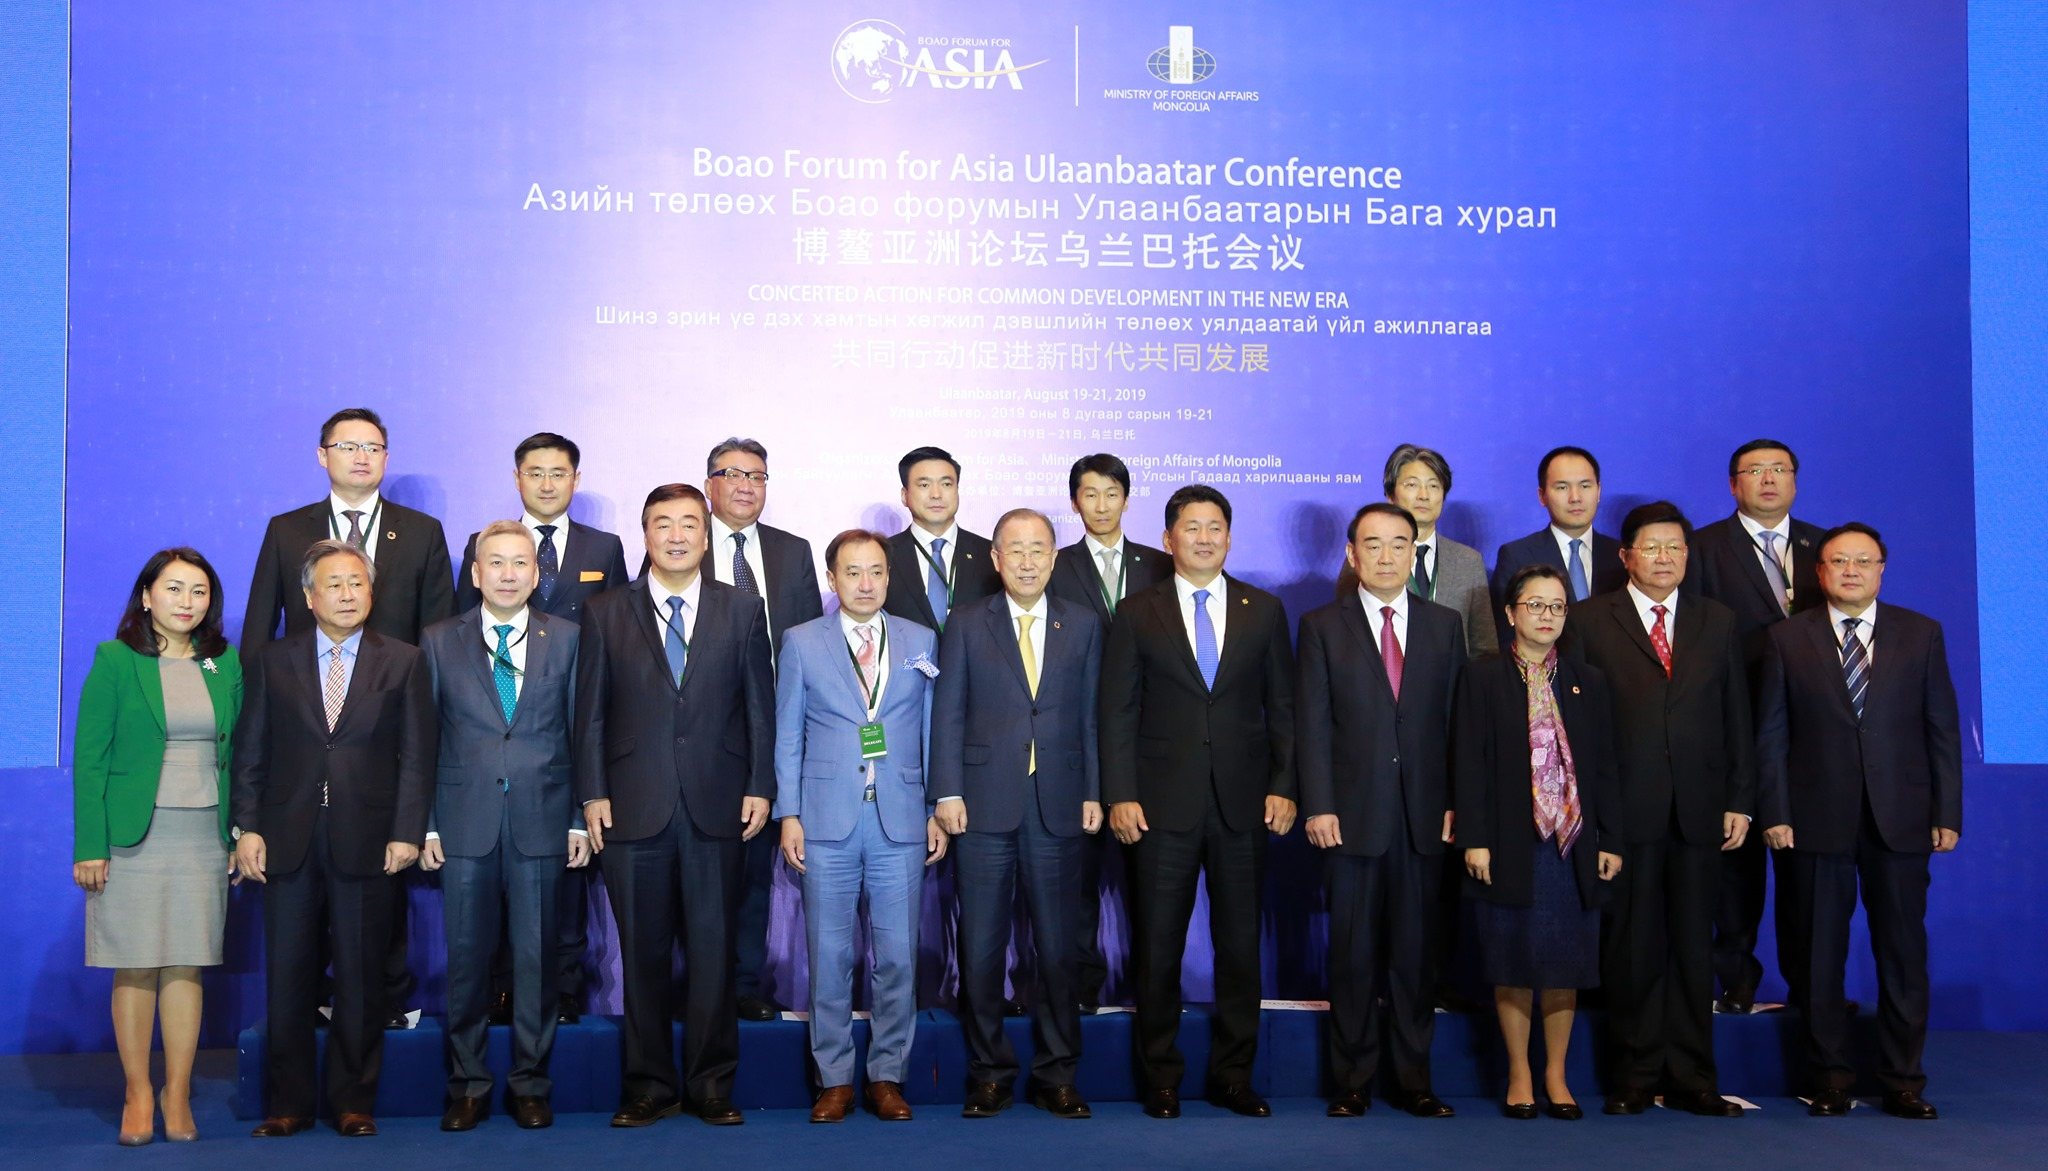 Boao Forum For Ajia Ulaanbaatar Conferenceが開催